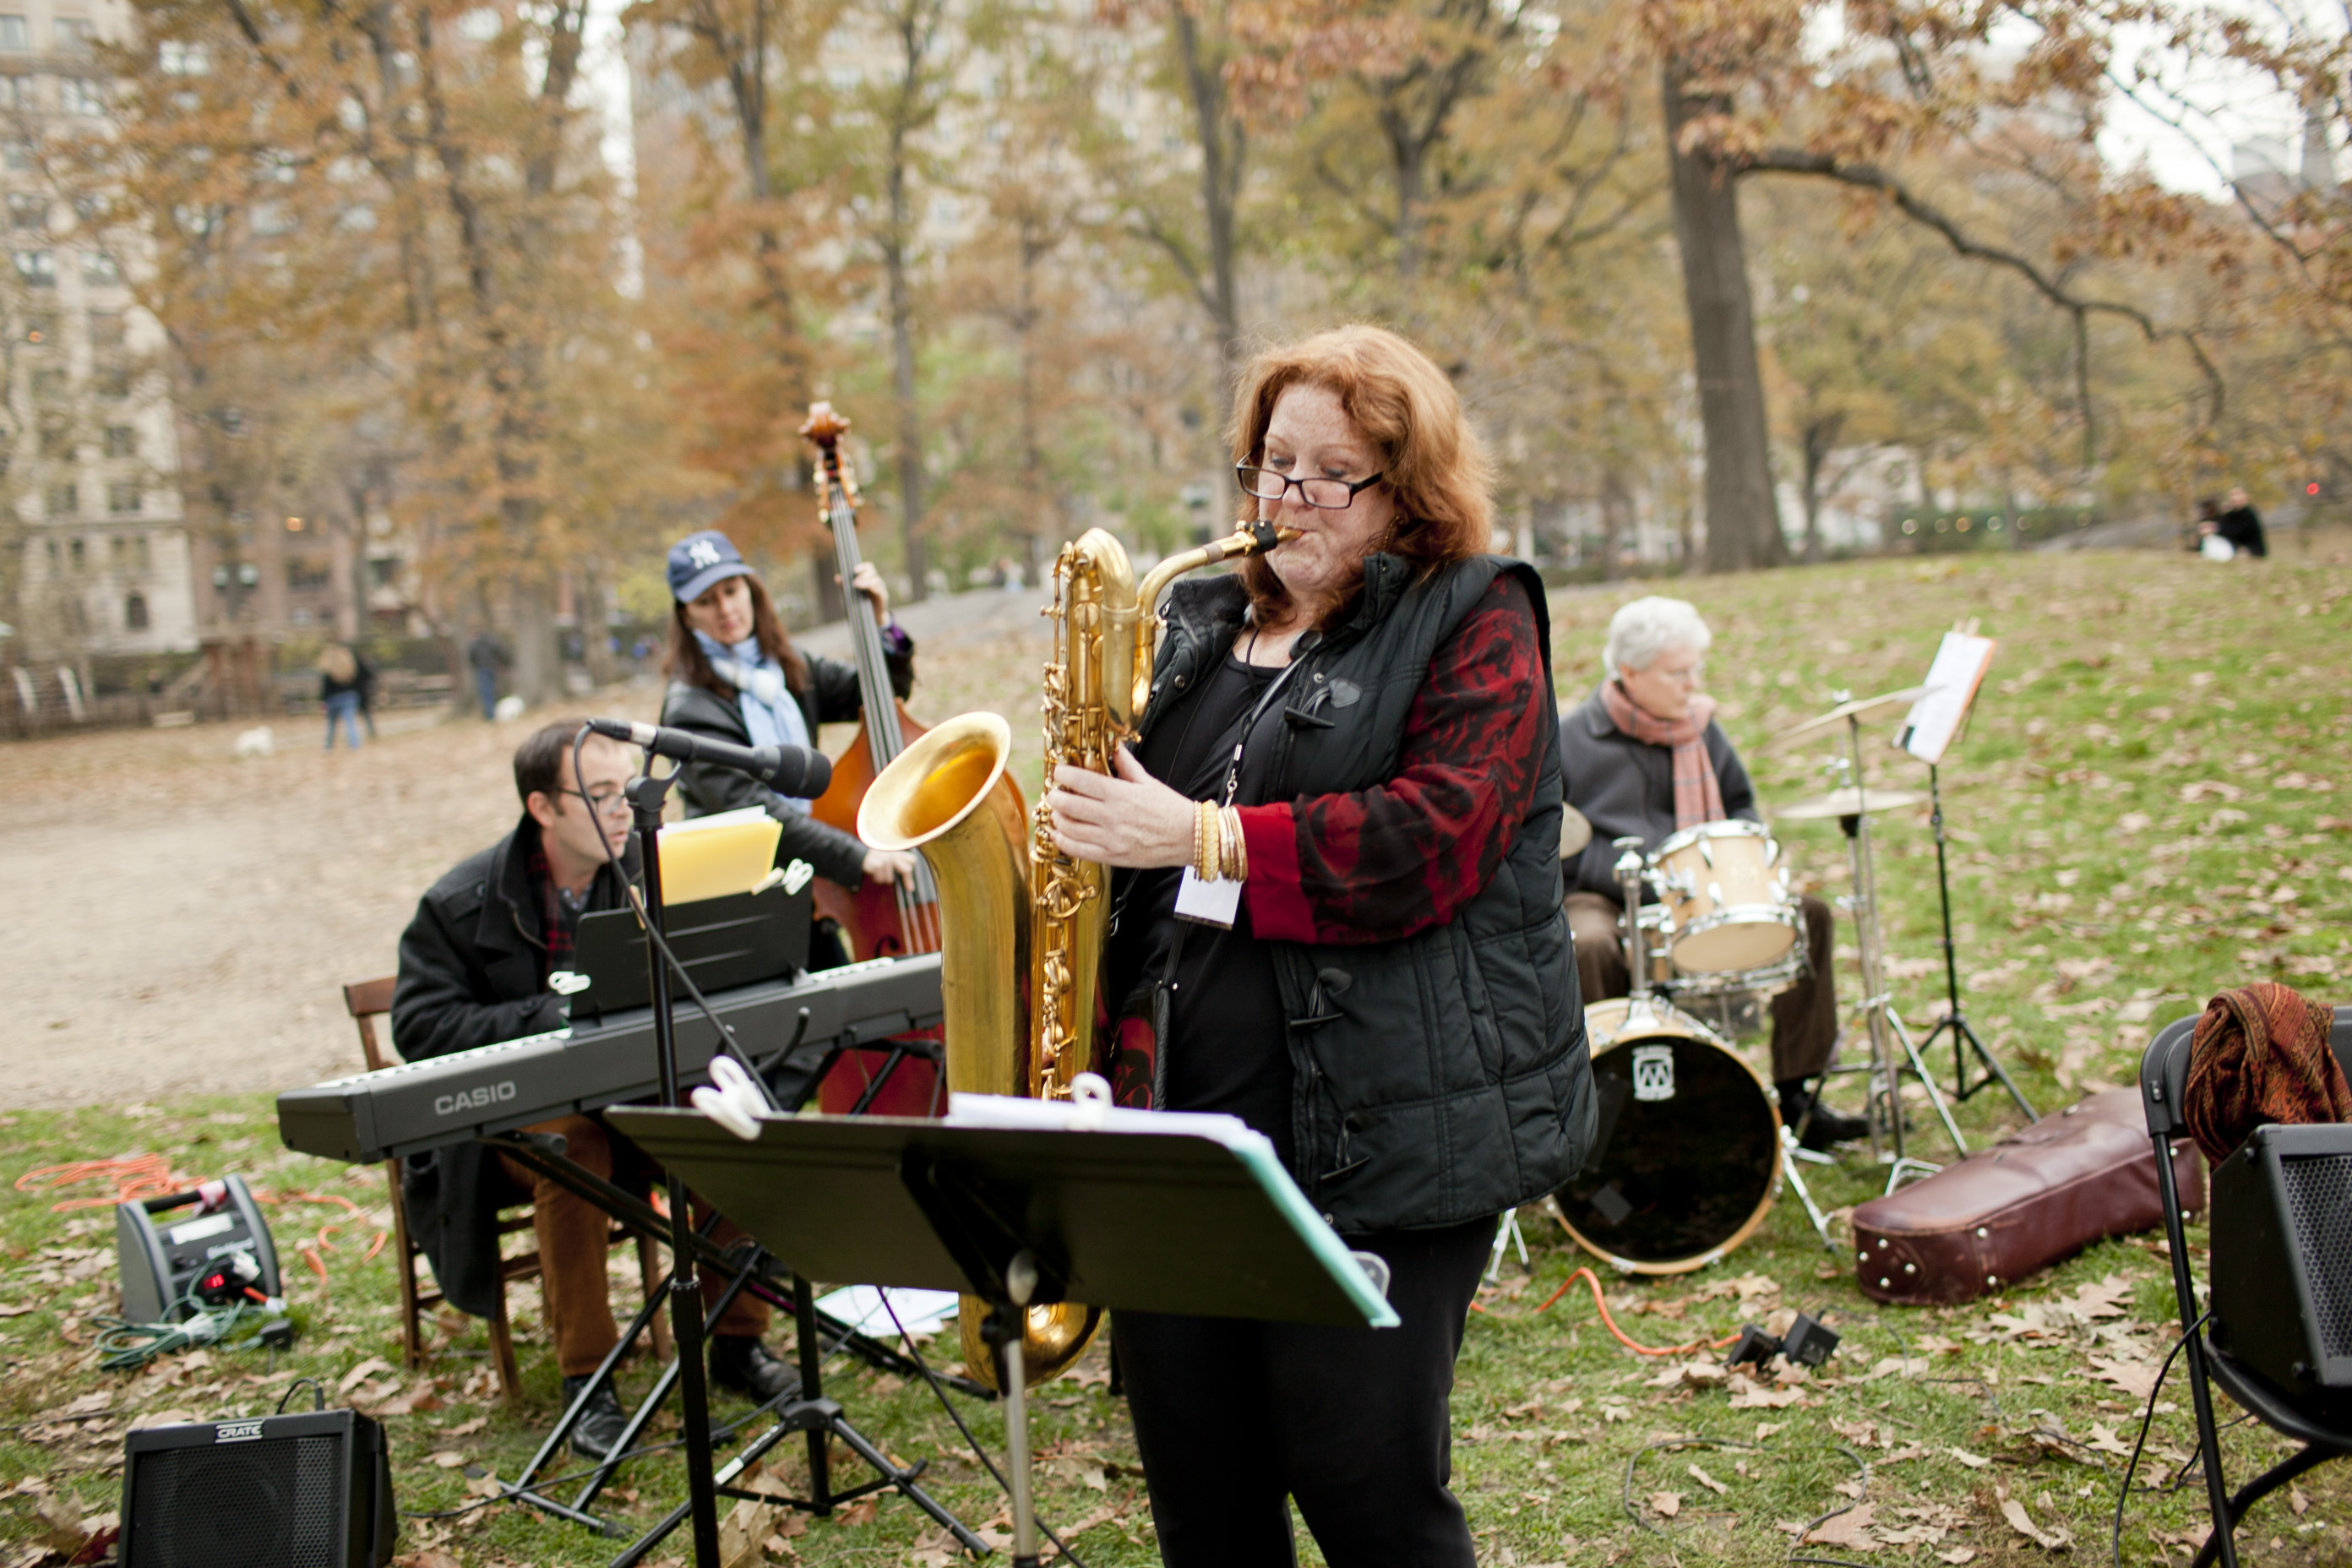 Baritone saxophonist Claire Daly led her quartet at the Wild West Playground, near West 93rd Street.